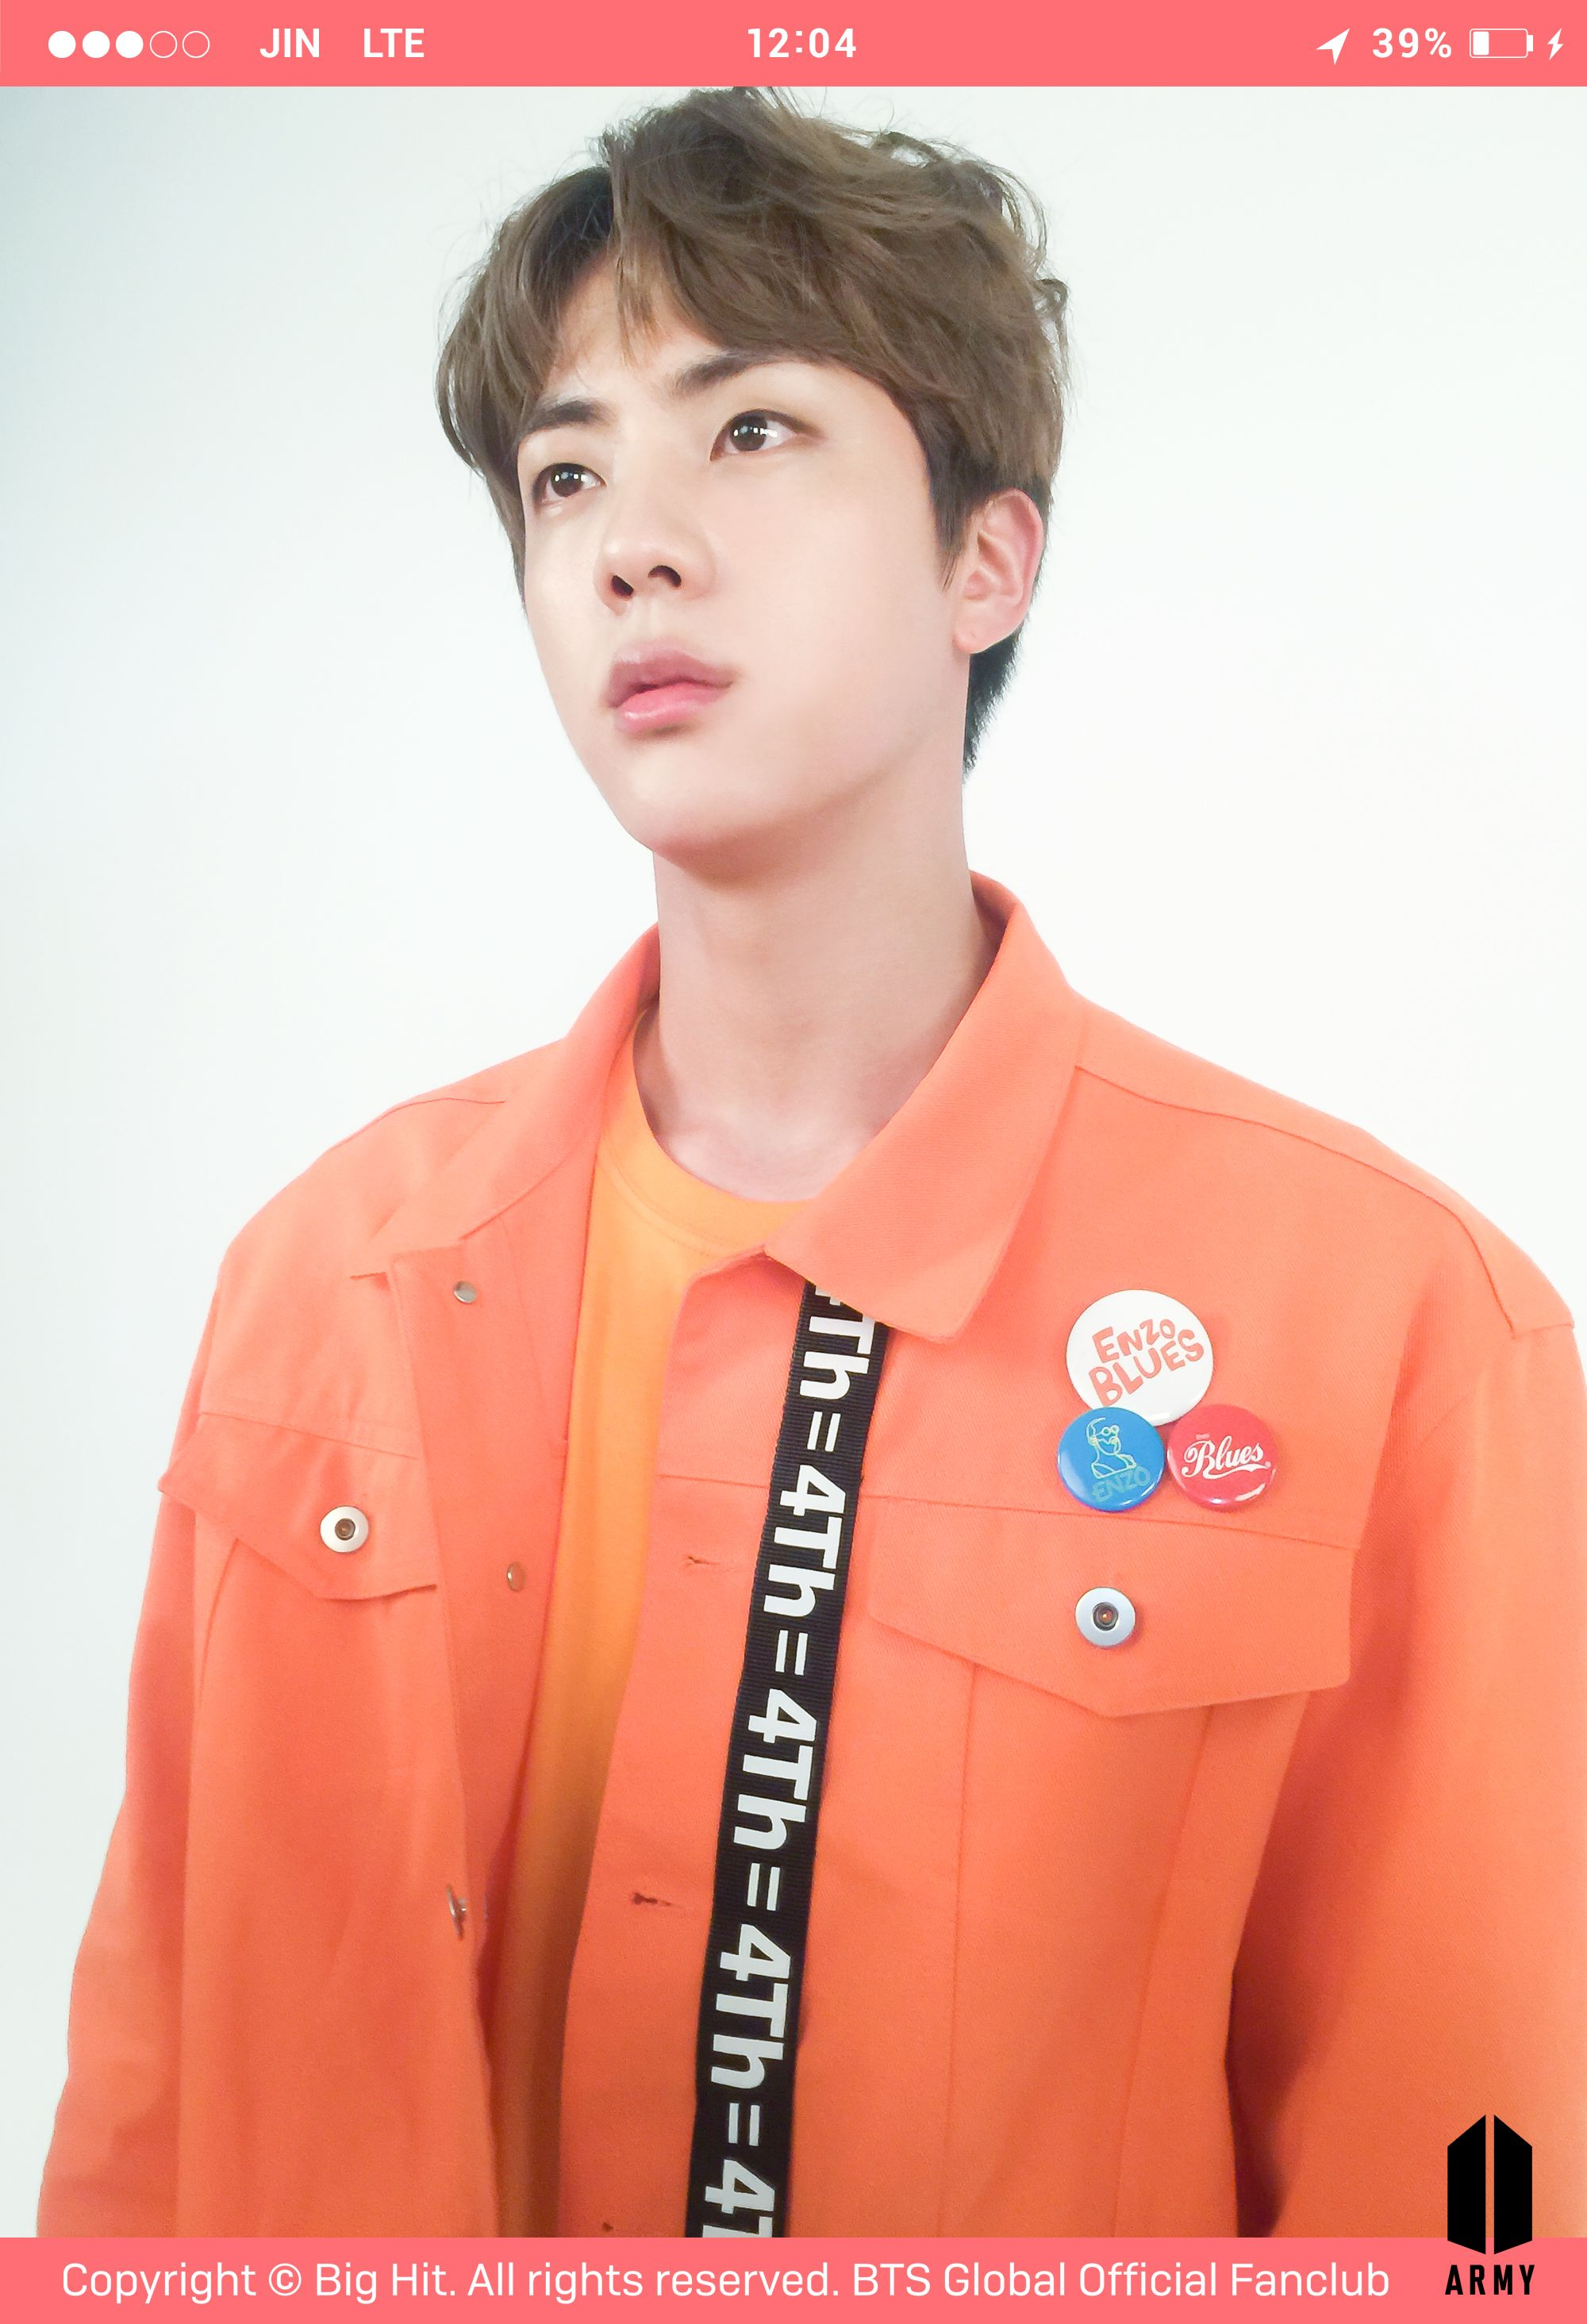 Happy Birthday Jin Bts Official Fancafe